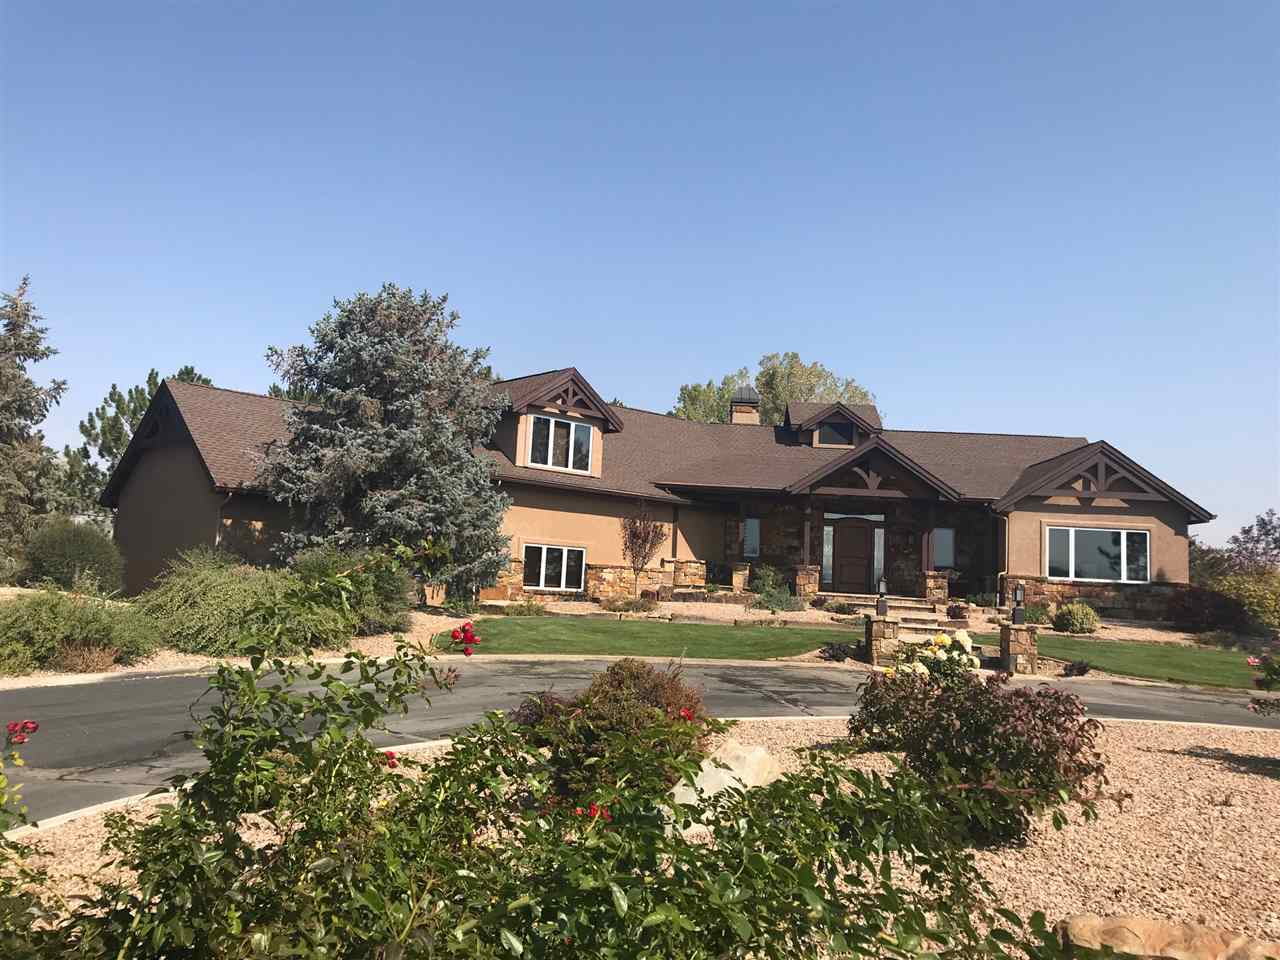 894 26 Road, Grand Junction, CO 81506